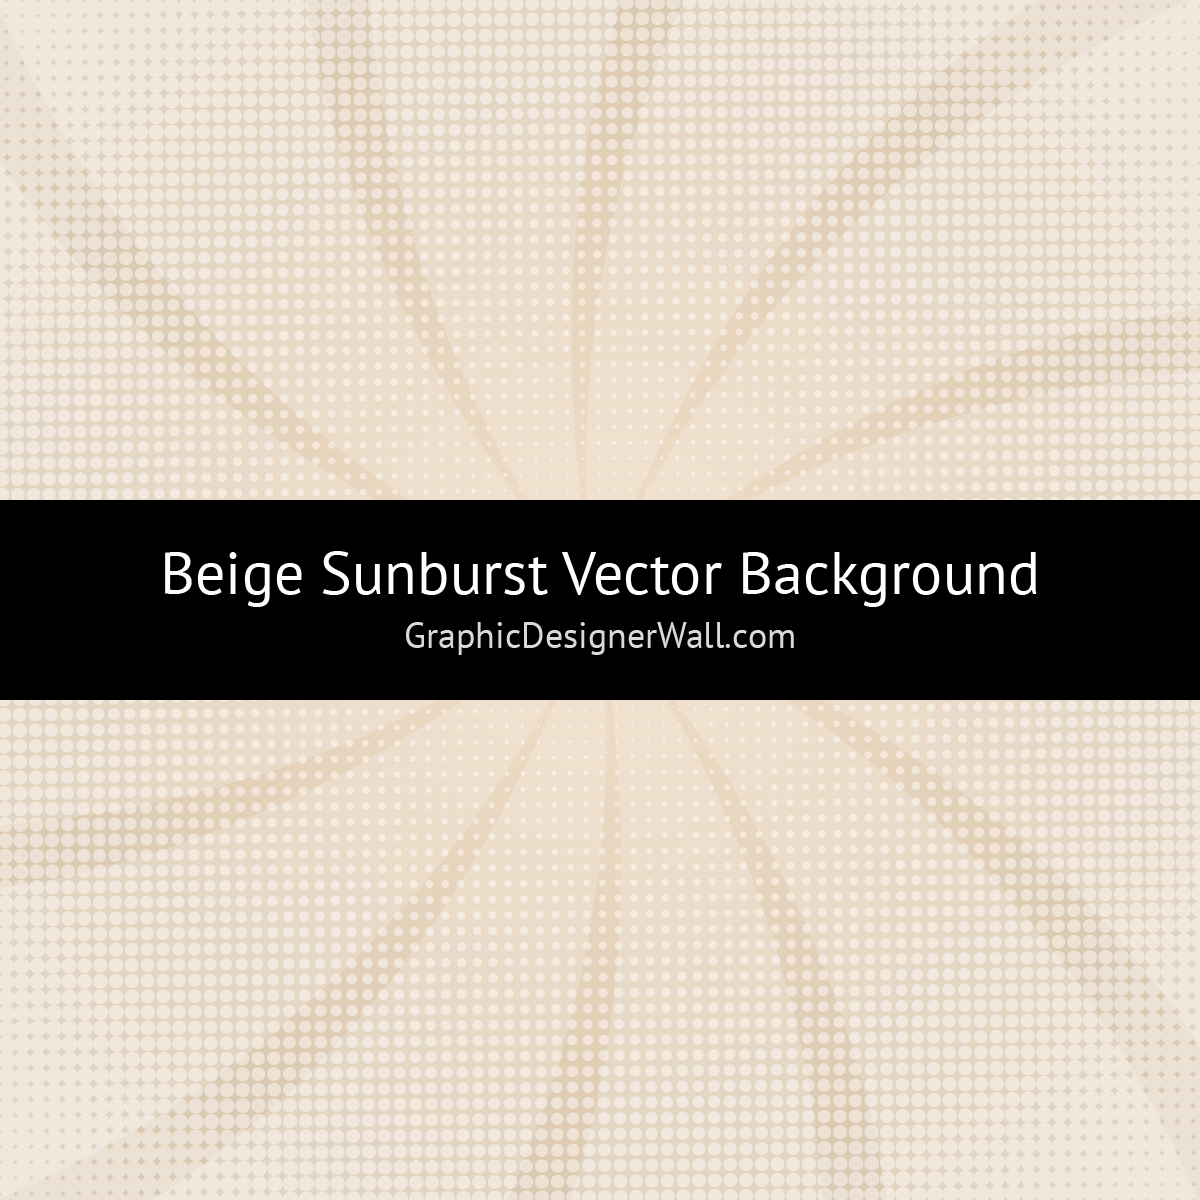 Beige Sunburst Vector Background